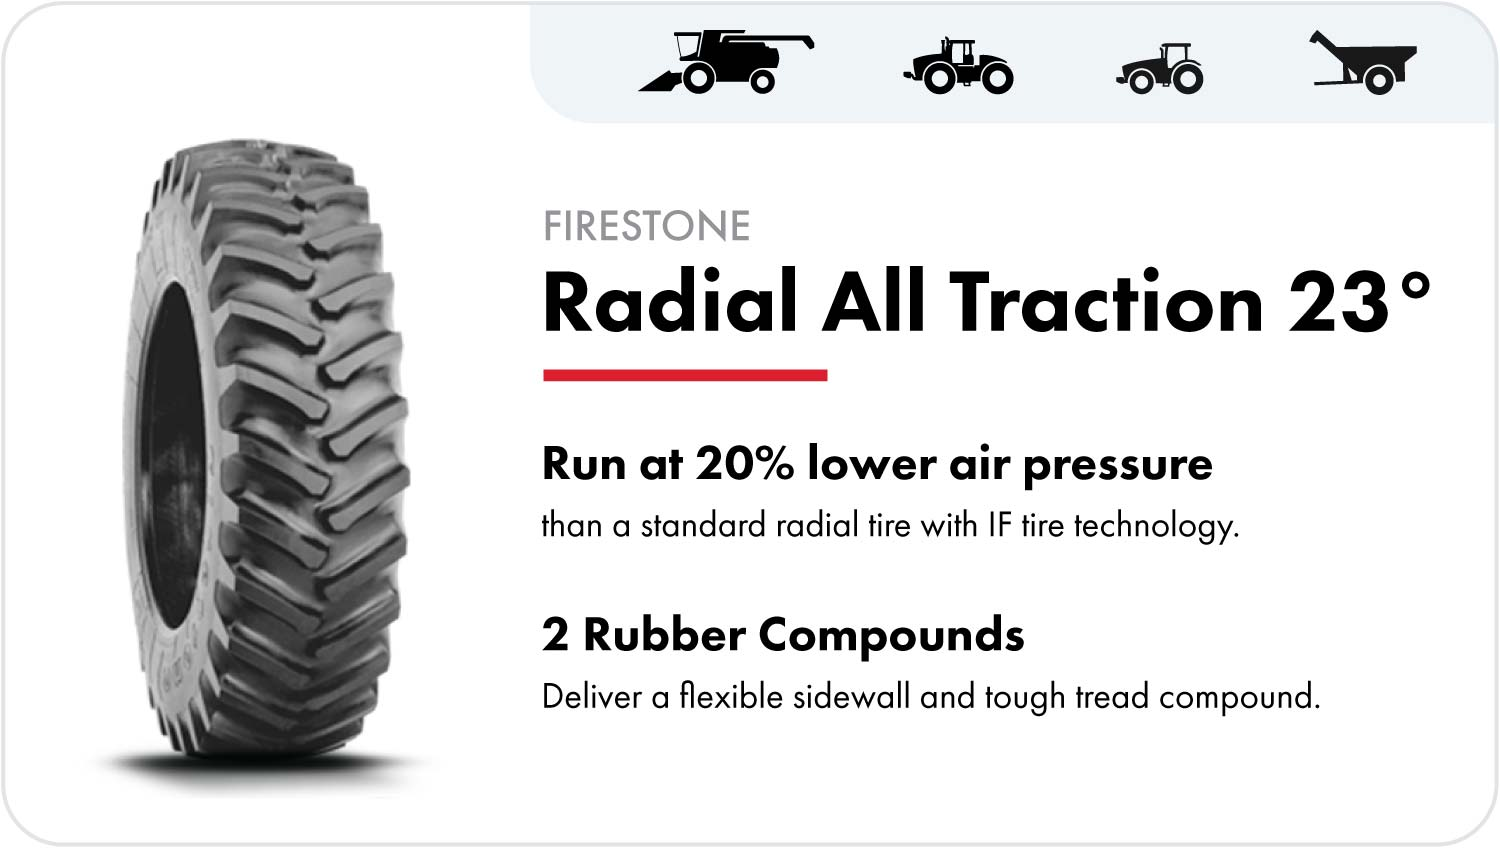 Firestone Radial All Traction 23° grain cart tire